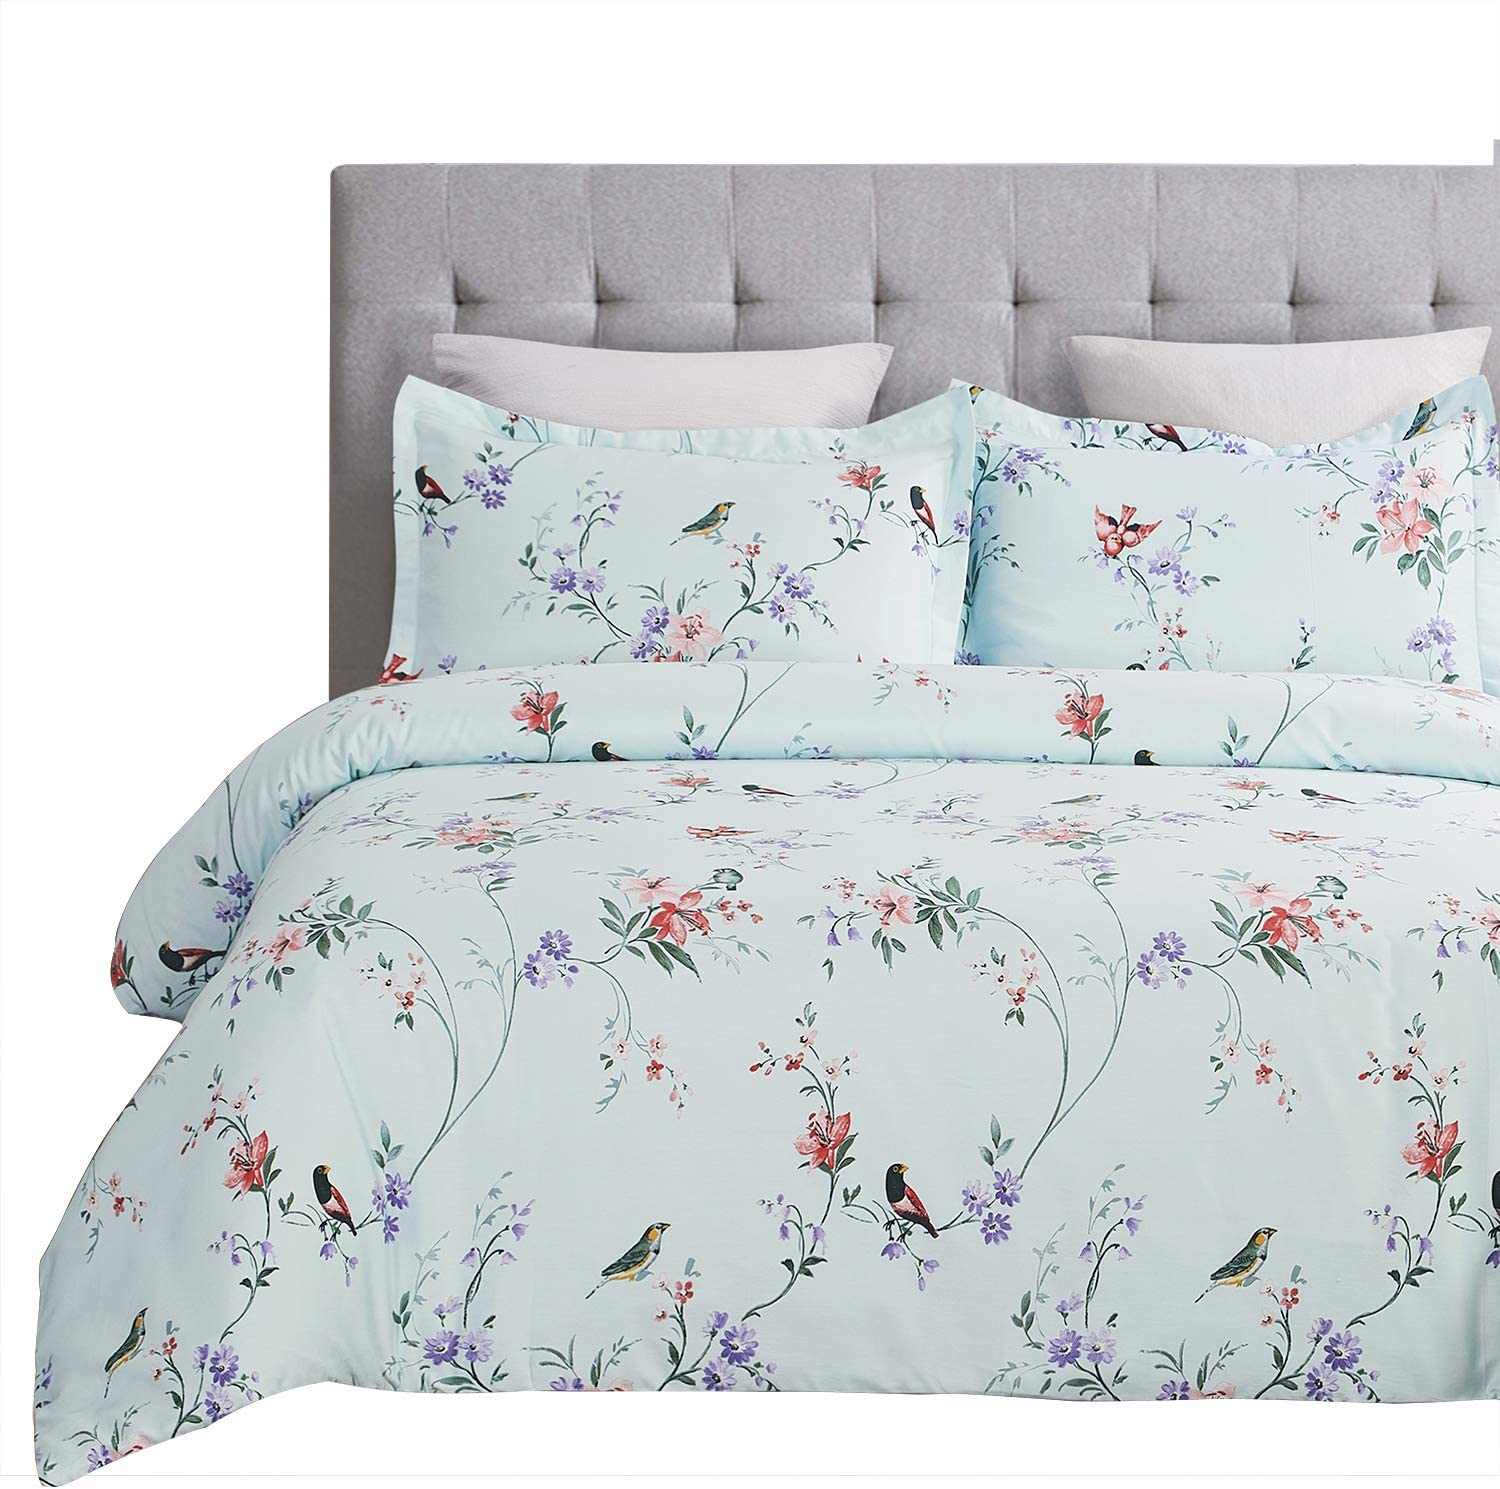 Twill Weave Fabric Structure Blue Flower Vaulia 250-Thread-Count 100/% Cotton Duvet Cover Set King